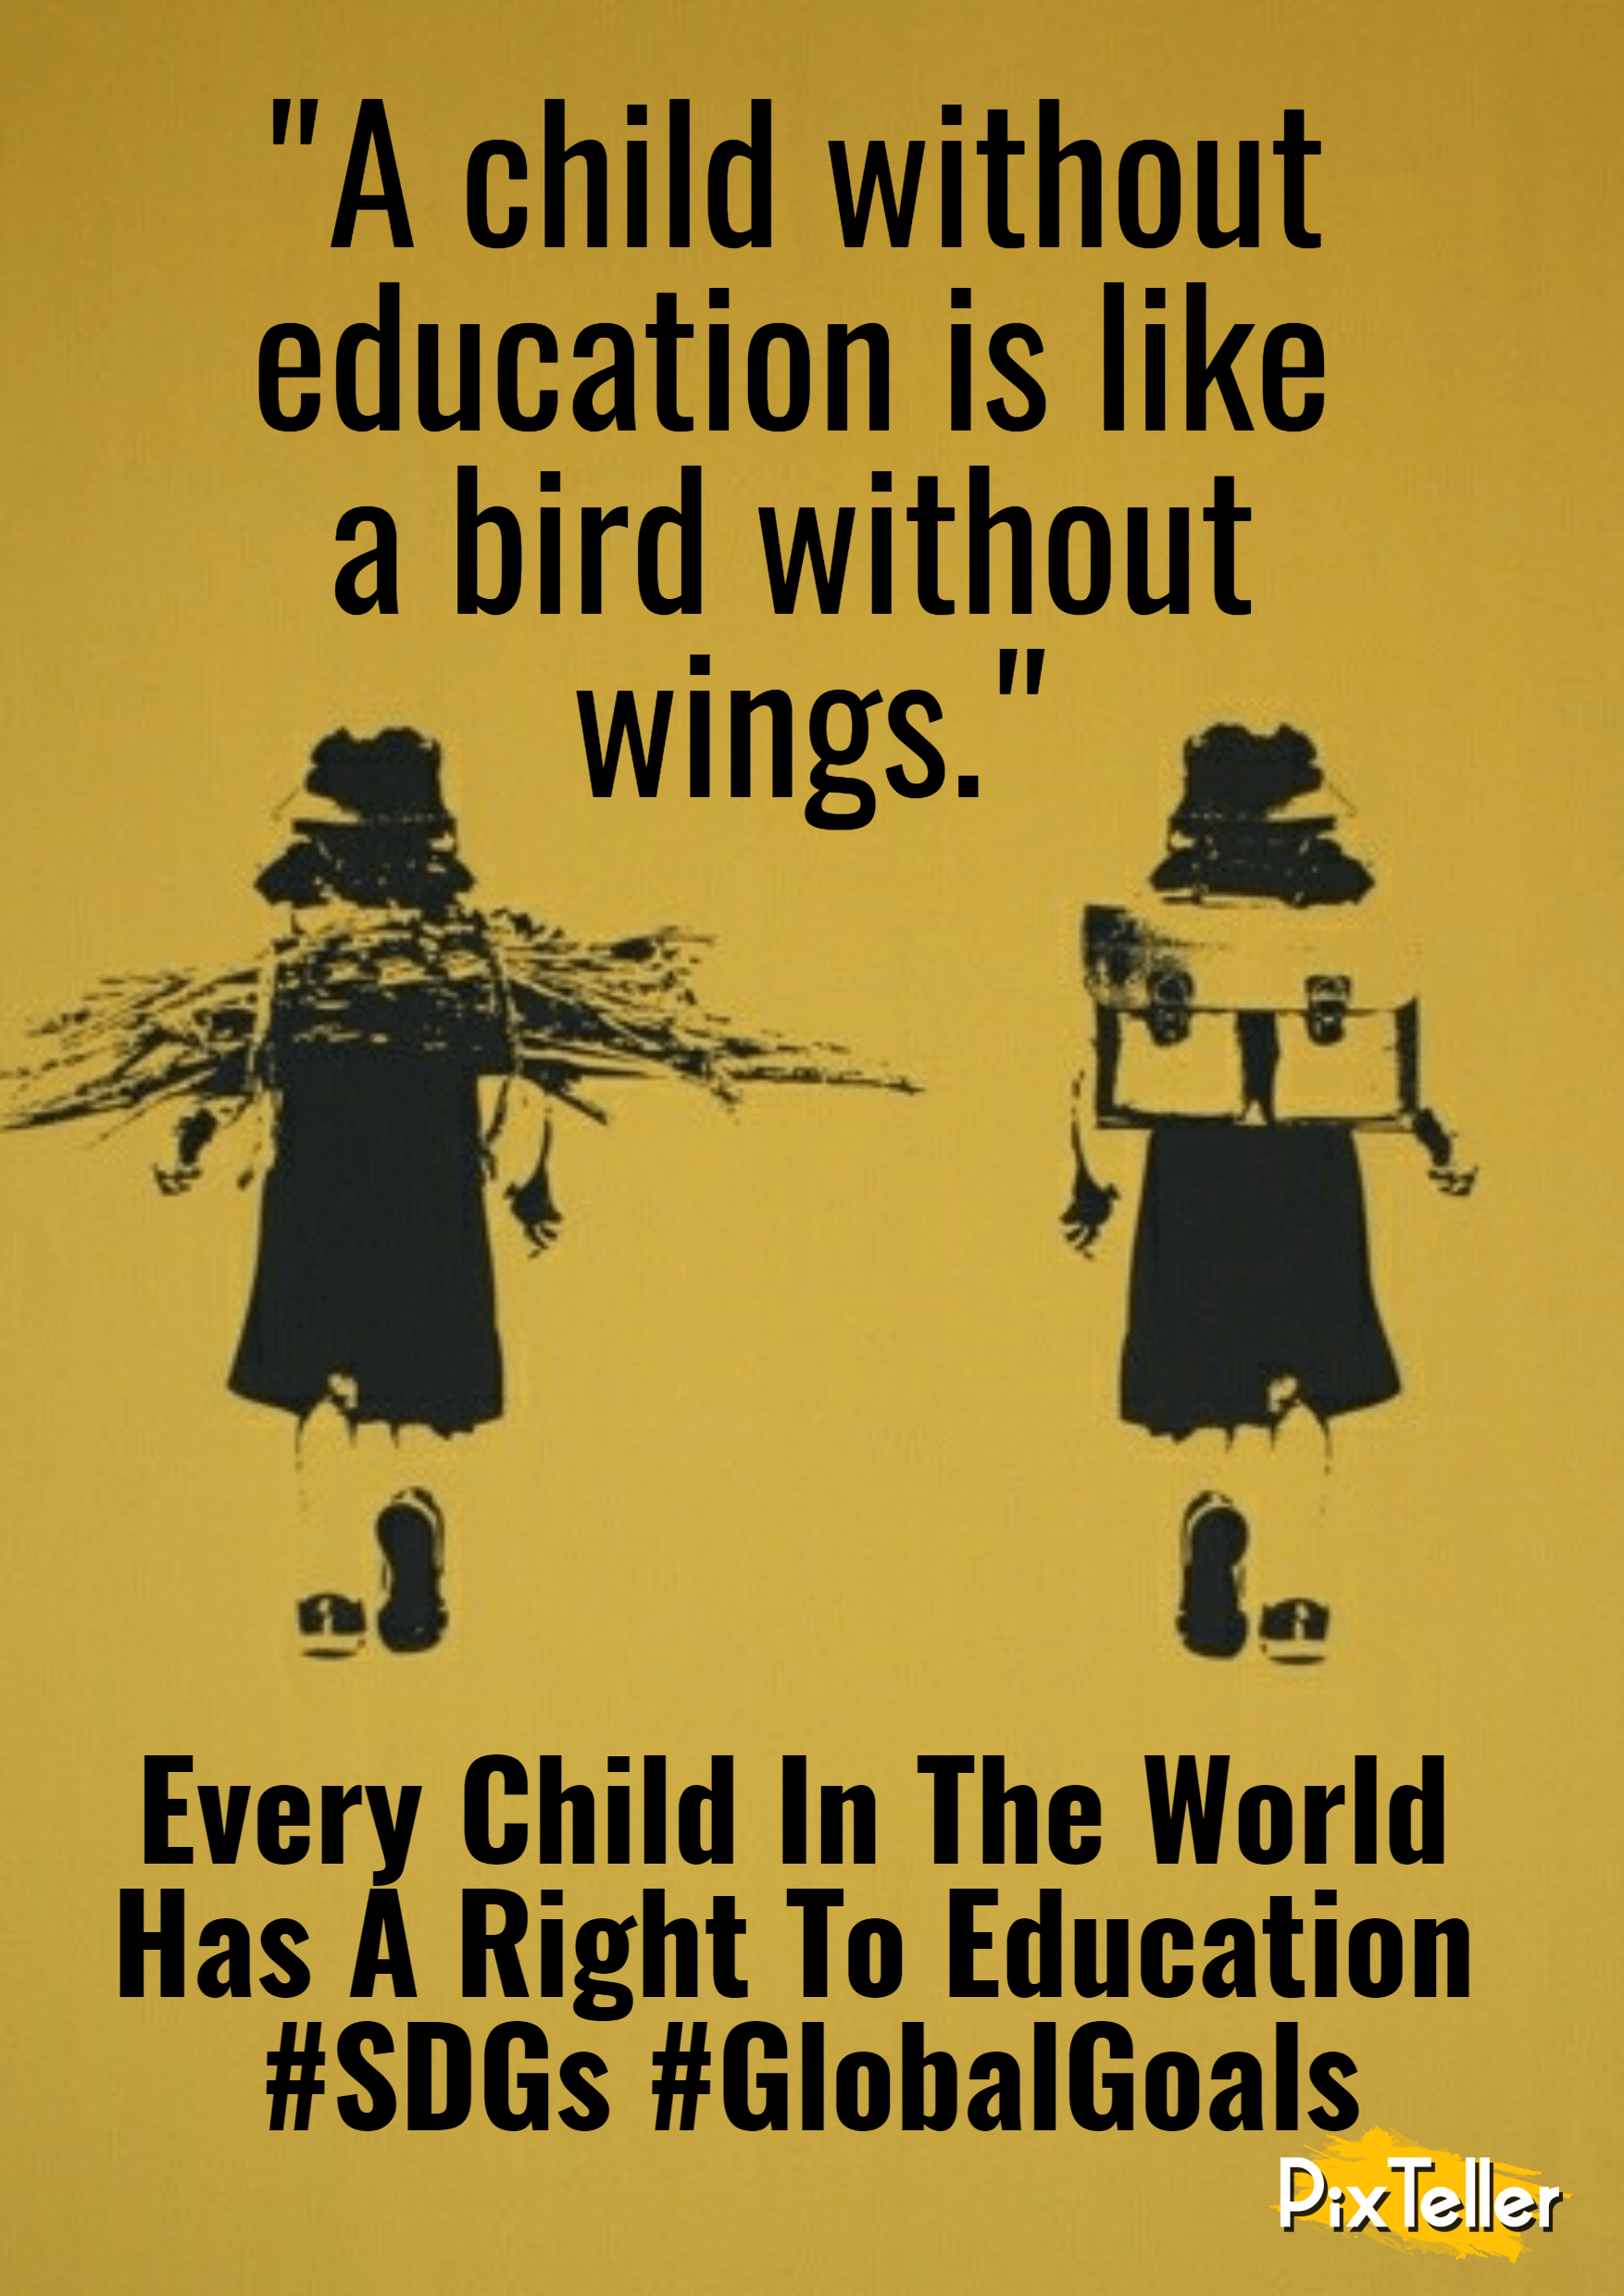 child education poster image customize download it for free 233770